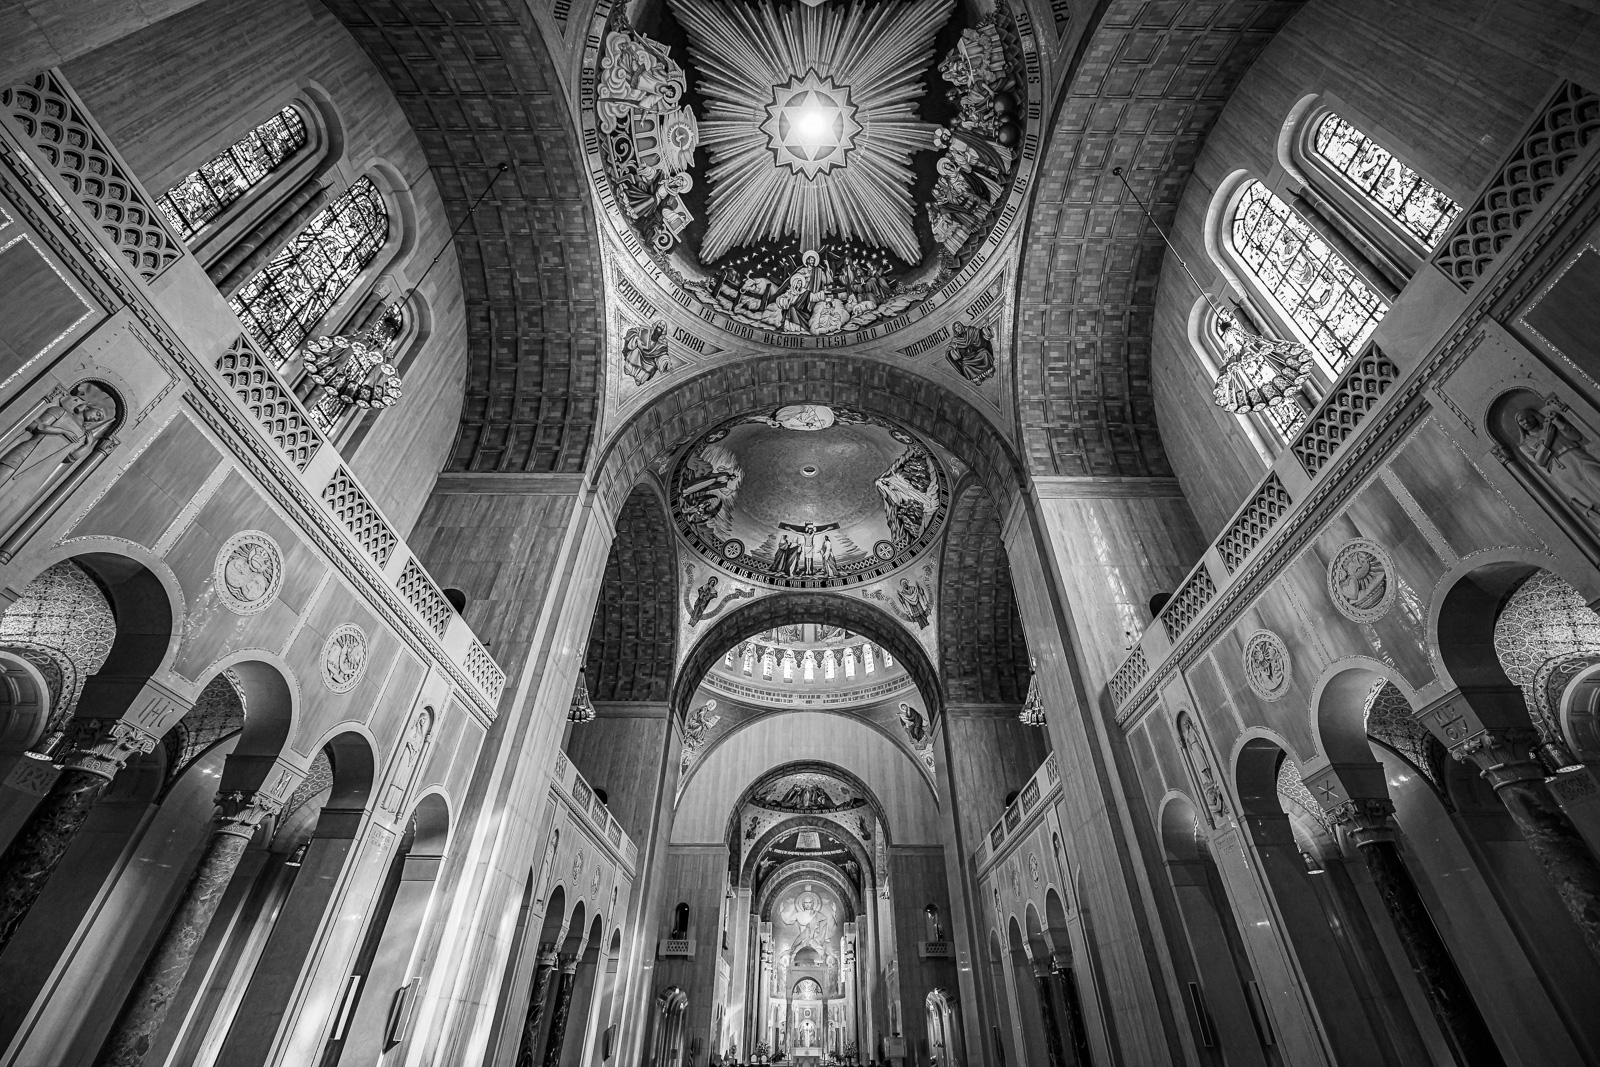 Interior detail of the The Basilica of the National Shrine of the Immaculate Conception, Washington, D.C.